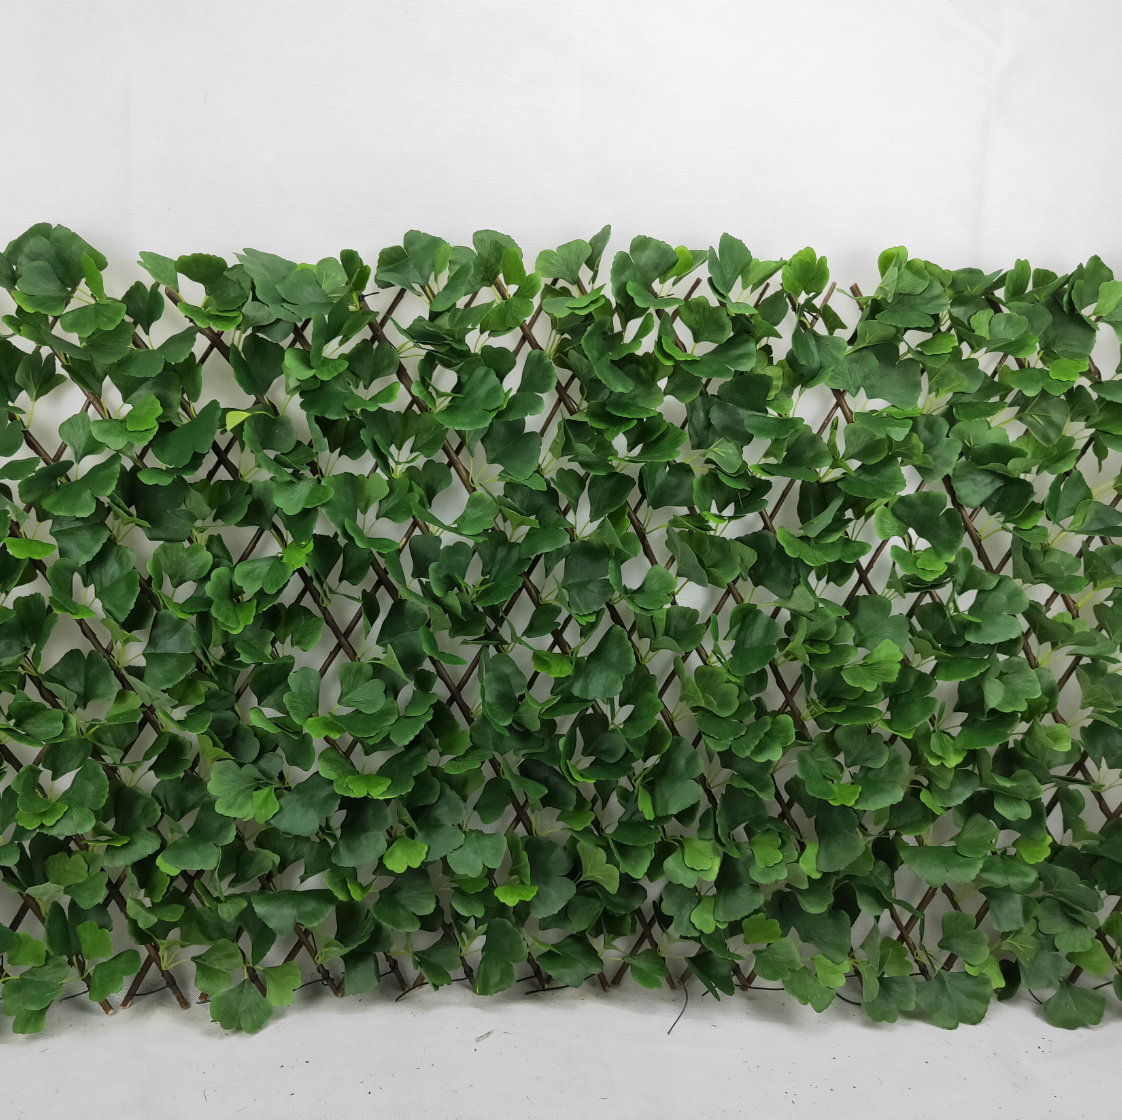 Artificial Outdoor Trellis Fence Willow Leaf Expand Fence For Garden Decoration Buy Green Leaf Barrier Fence Willow Branch Fence Panels Plastic Lattice Fence Product On Alibaba Com